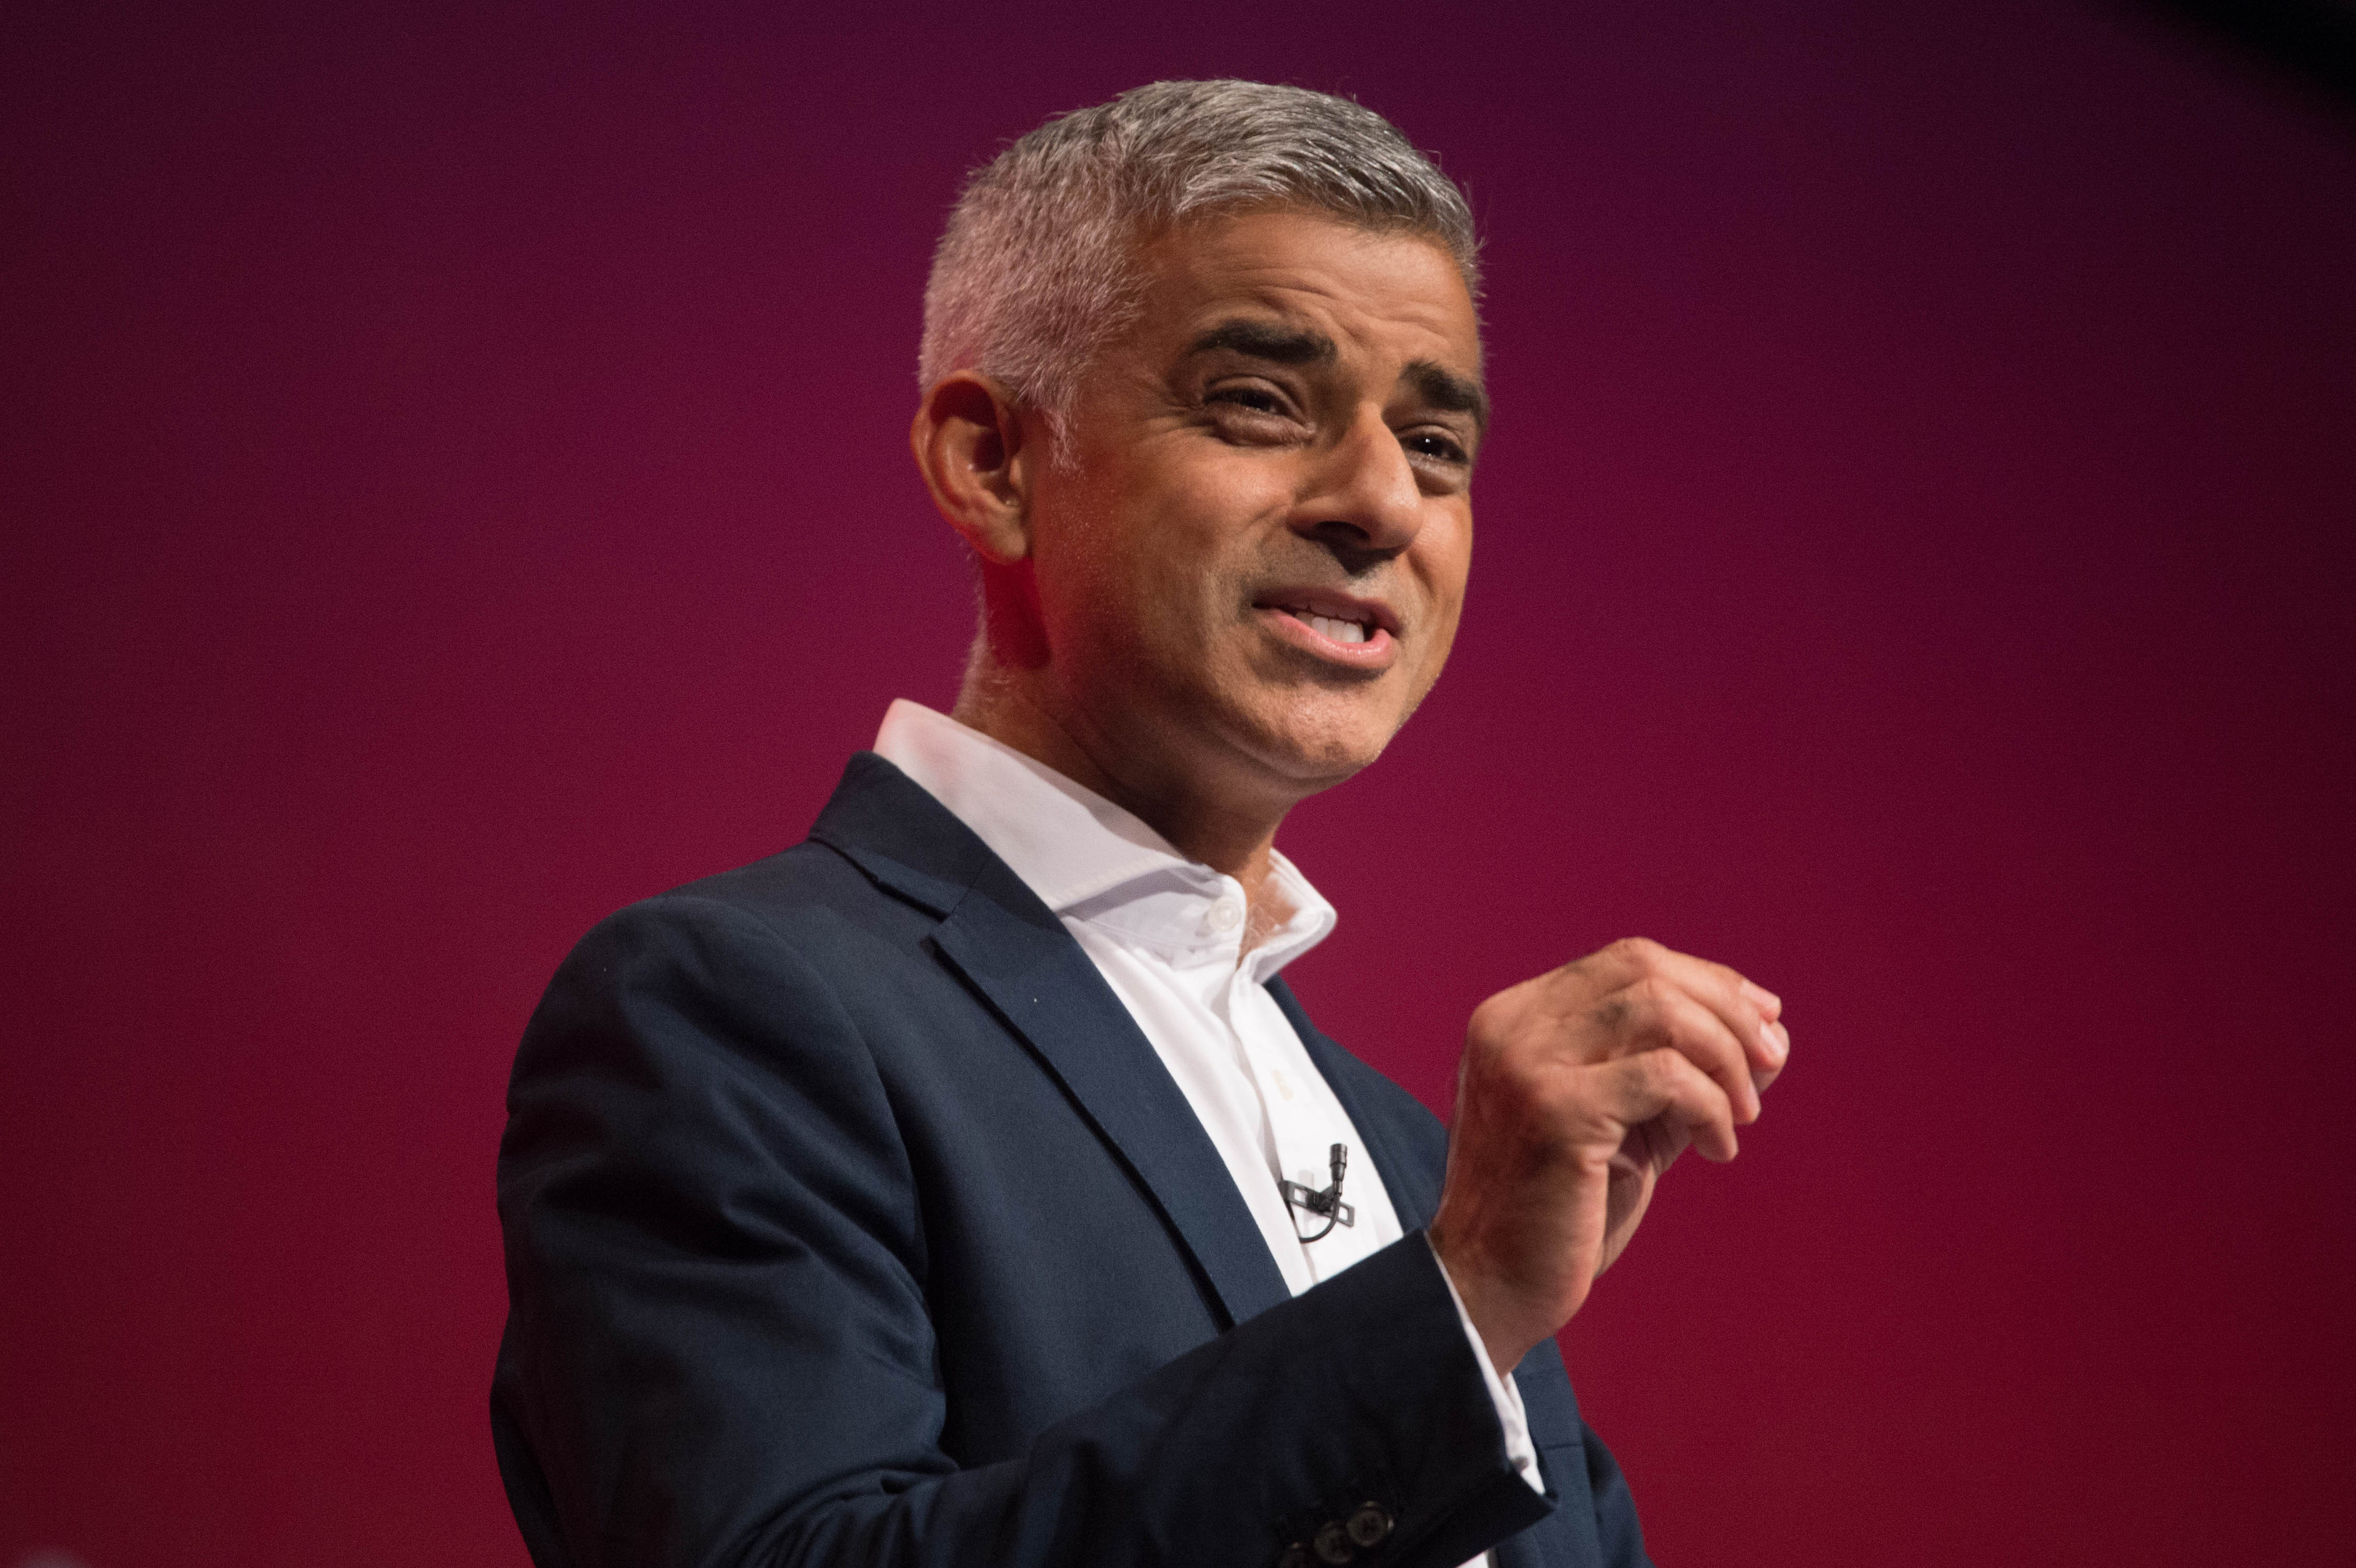 Mayor of London Sadiq Khan addressing the Labour Party annual conference at the Brighton Centre, Brighton. PRESS ASSOCIATION Photo. Picture date: Monday September 25, 2017. See PA story LABOUR Khan. Photo credit should read: Stefan Rousseau/PA Wire